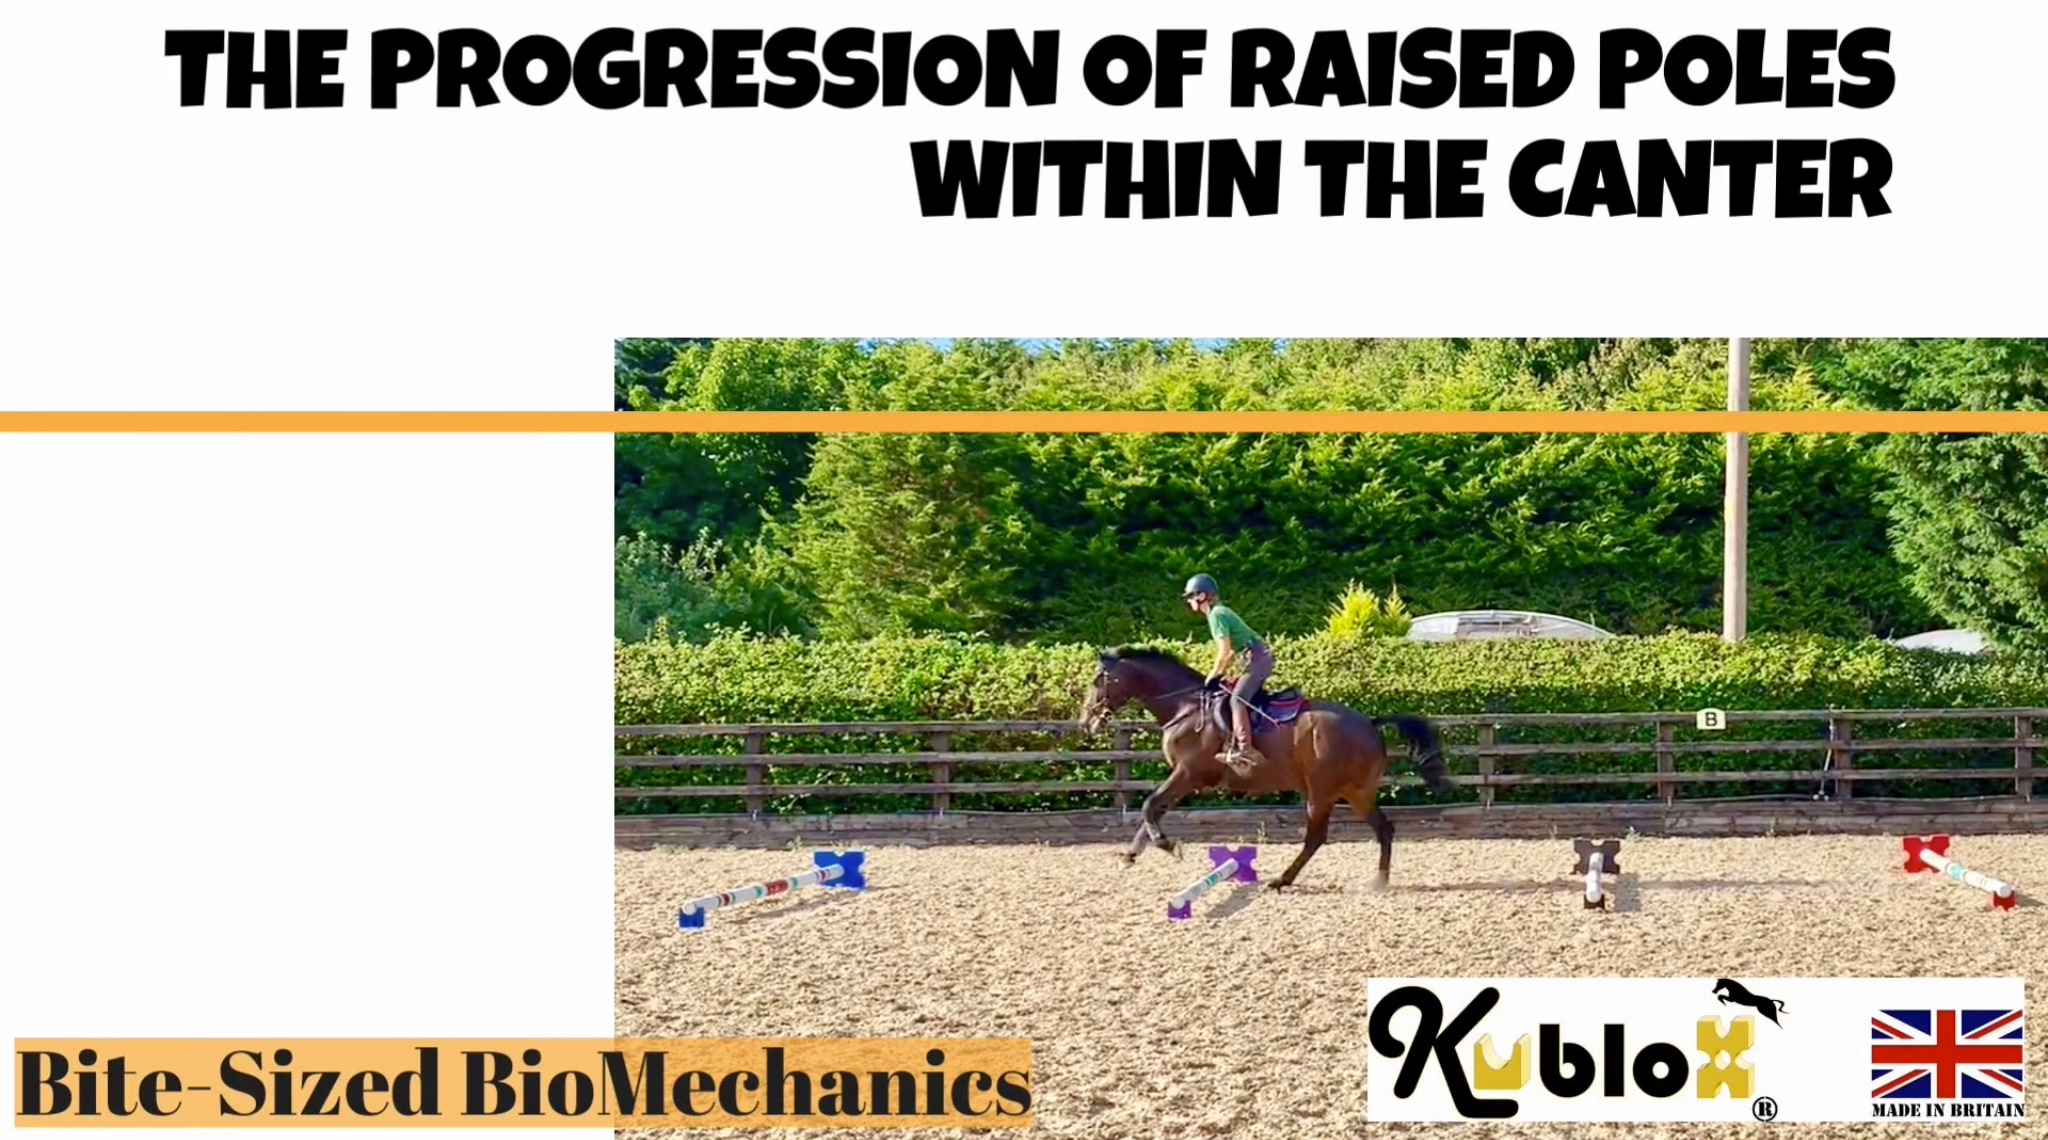 The Progression of Raised Poles within the Canter.